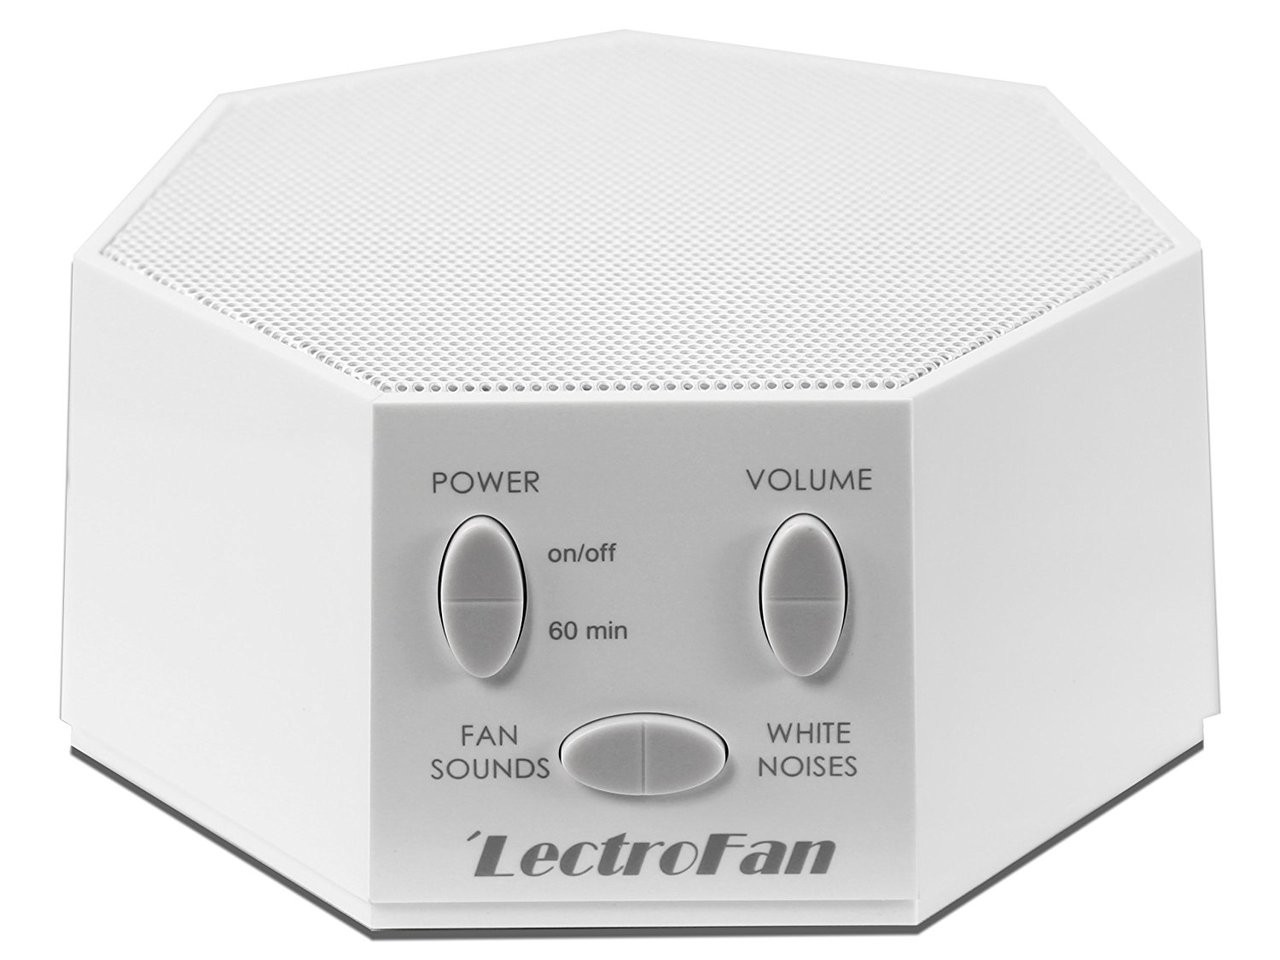 LectroFan ASM1007-WR White Noise and Fan Sound Machine - White